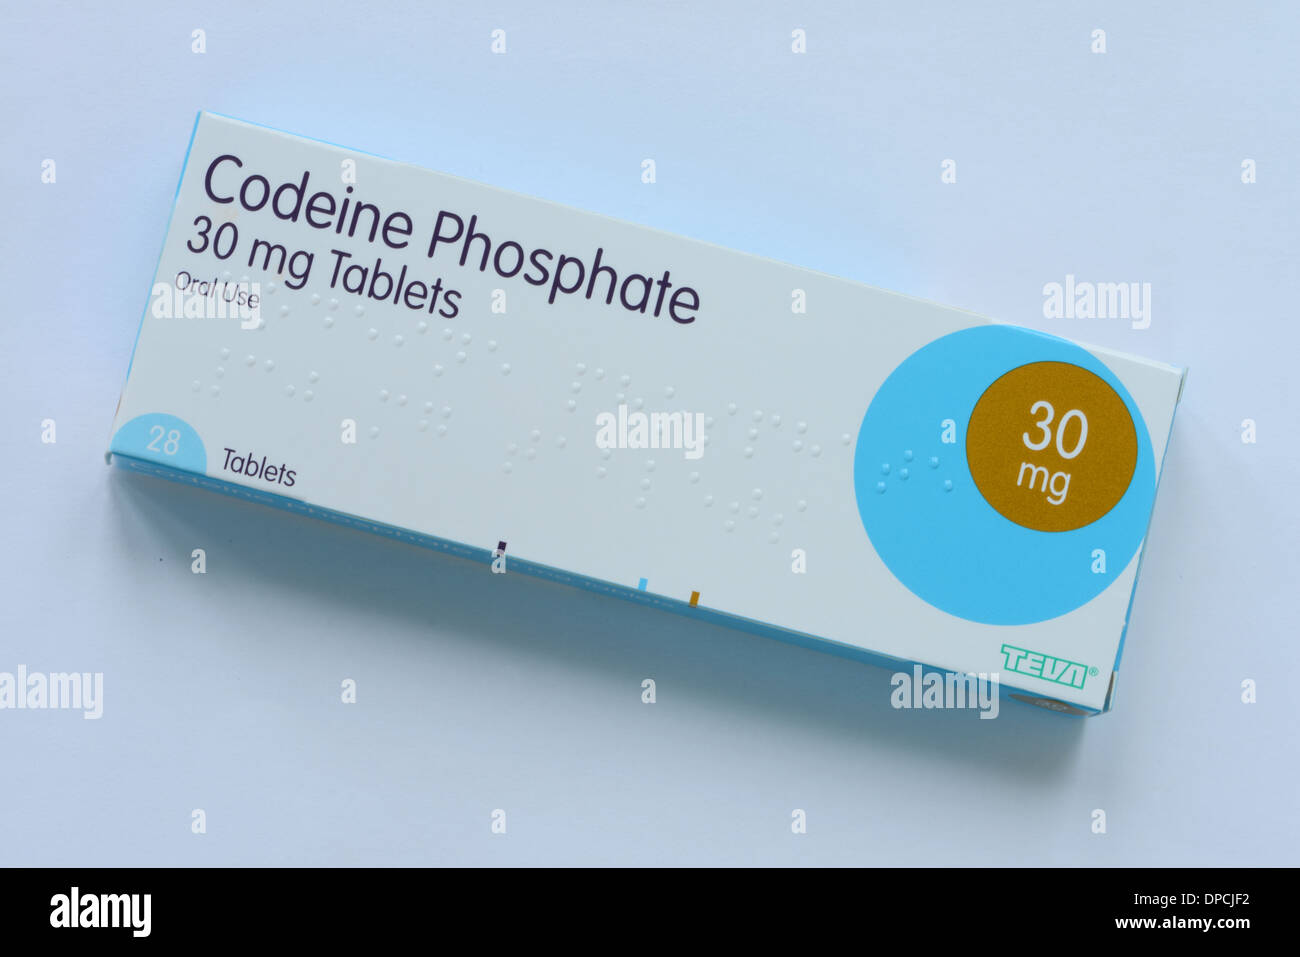 Codeine Phosphate tablets on a pale blue background - Stock Image